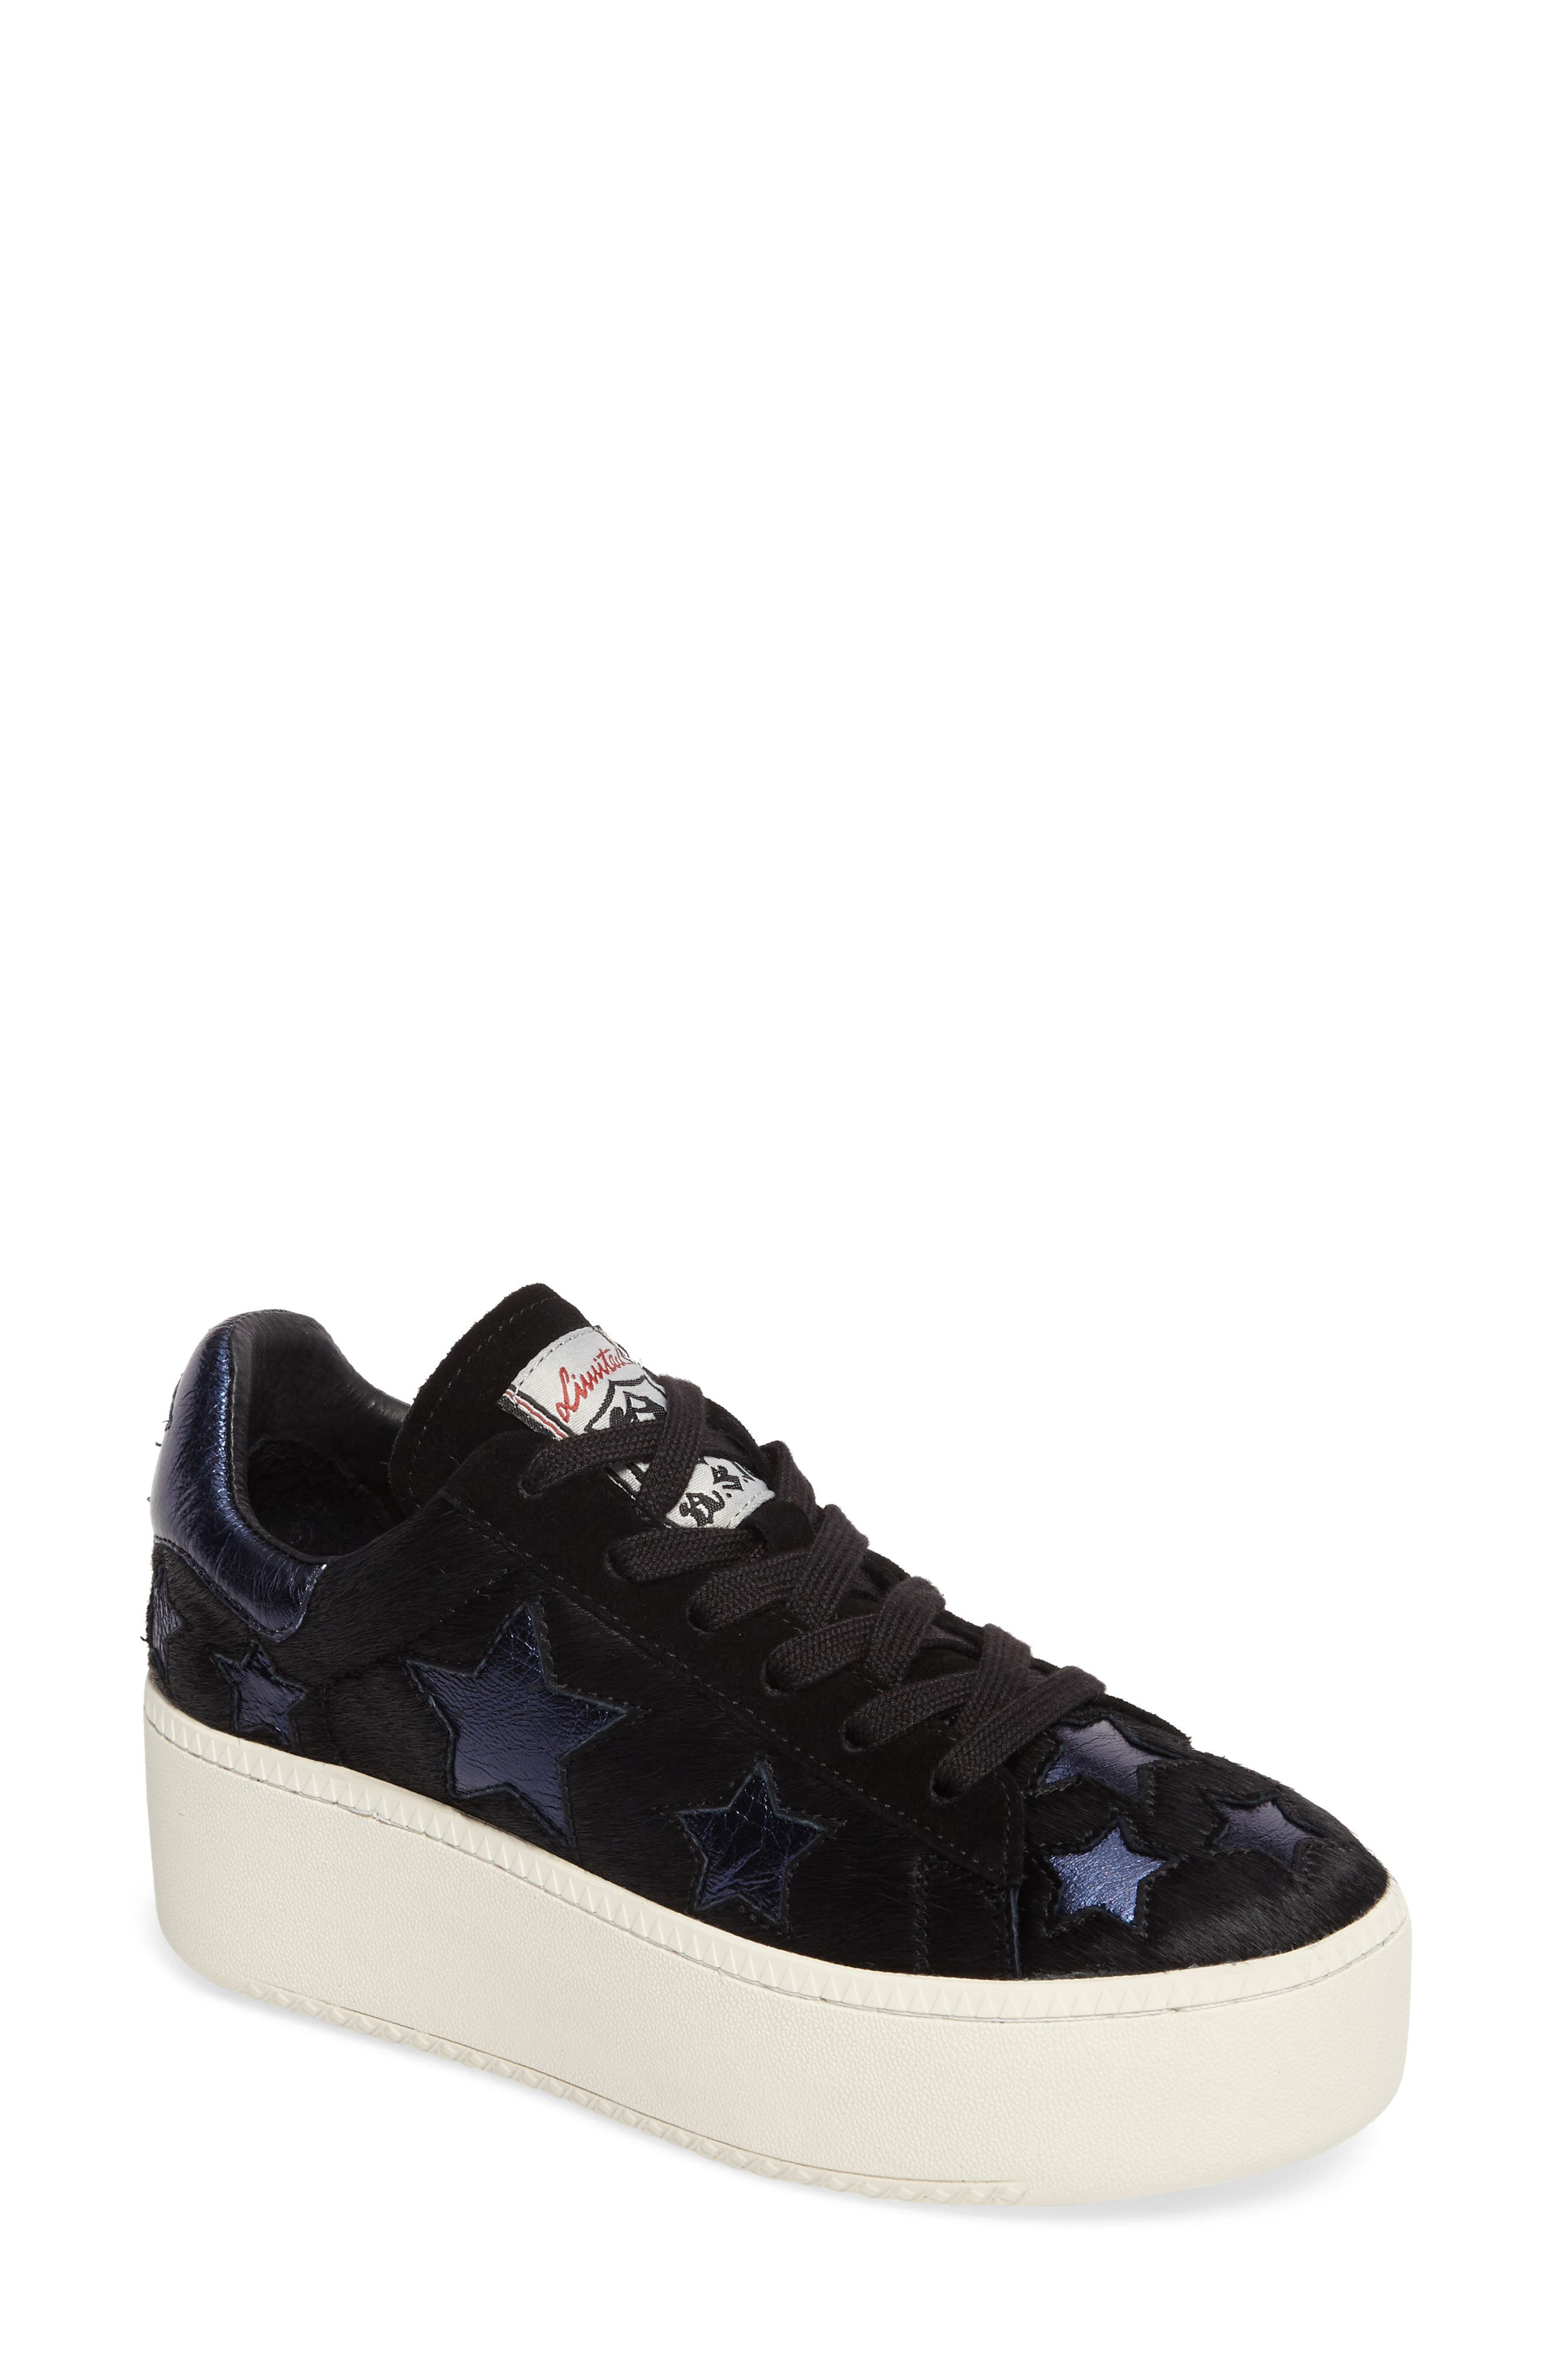 Cult Star Calf Hair Sneaker,                             Main thumbnail 1, color,                             Black/ Midnight Leather